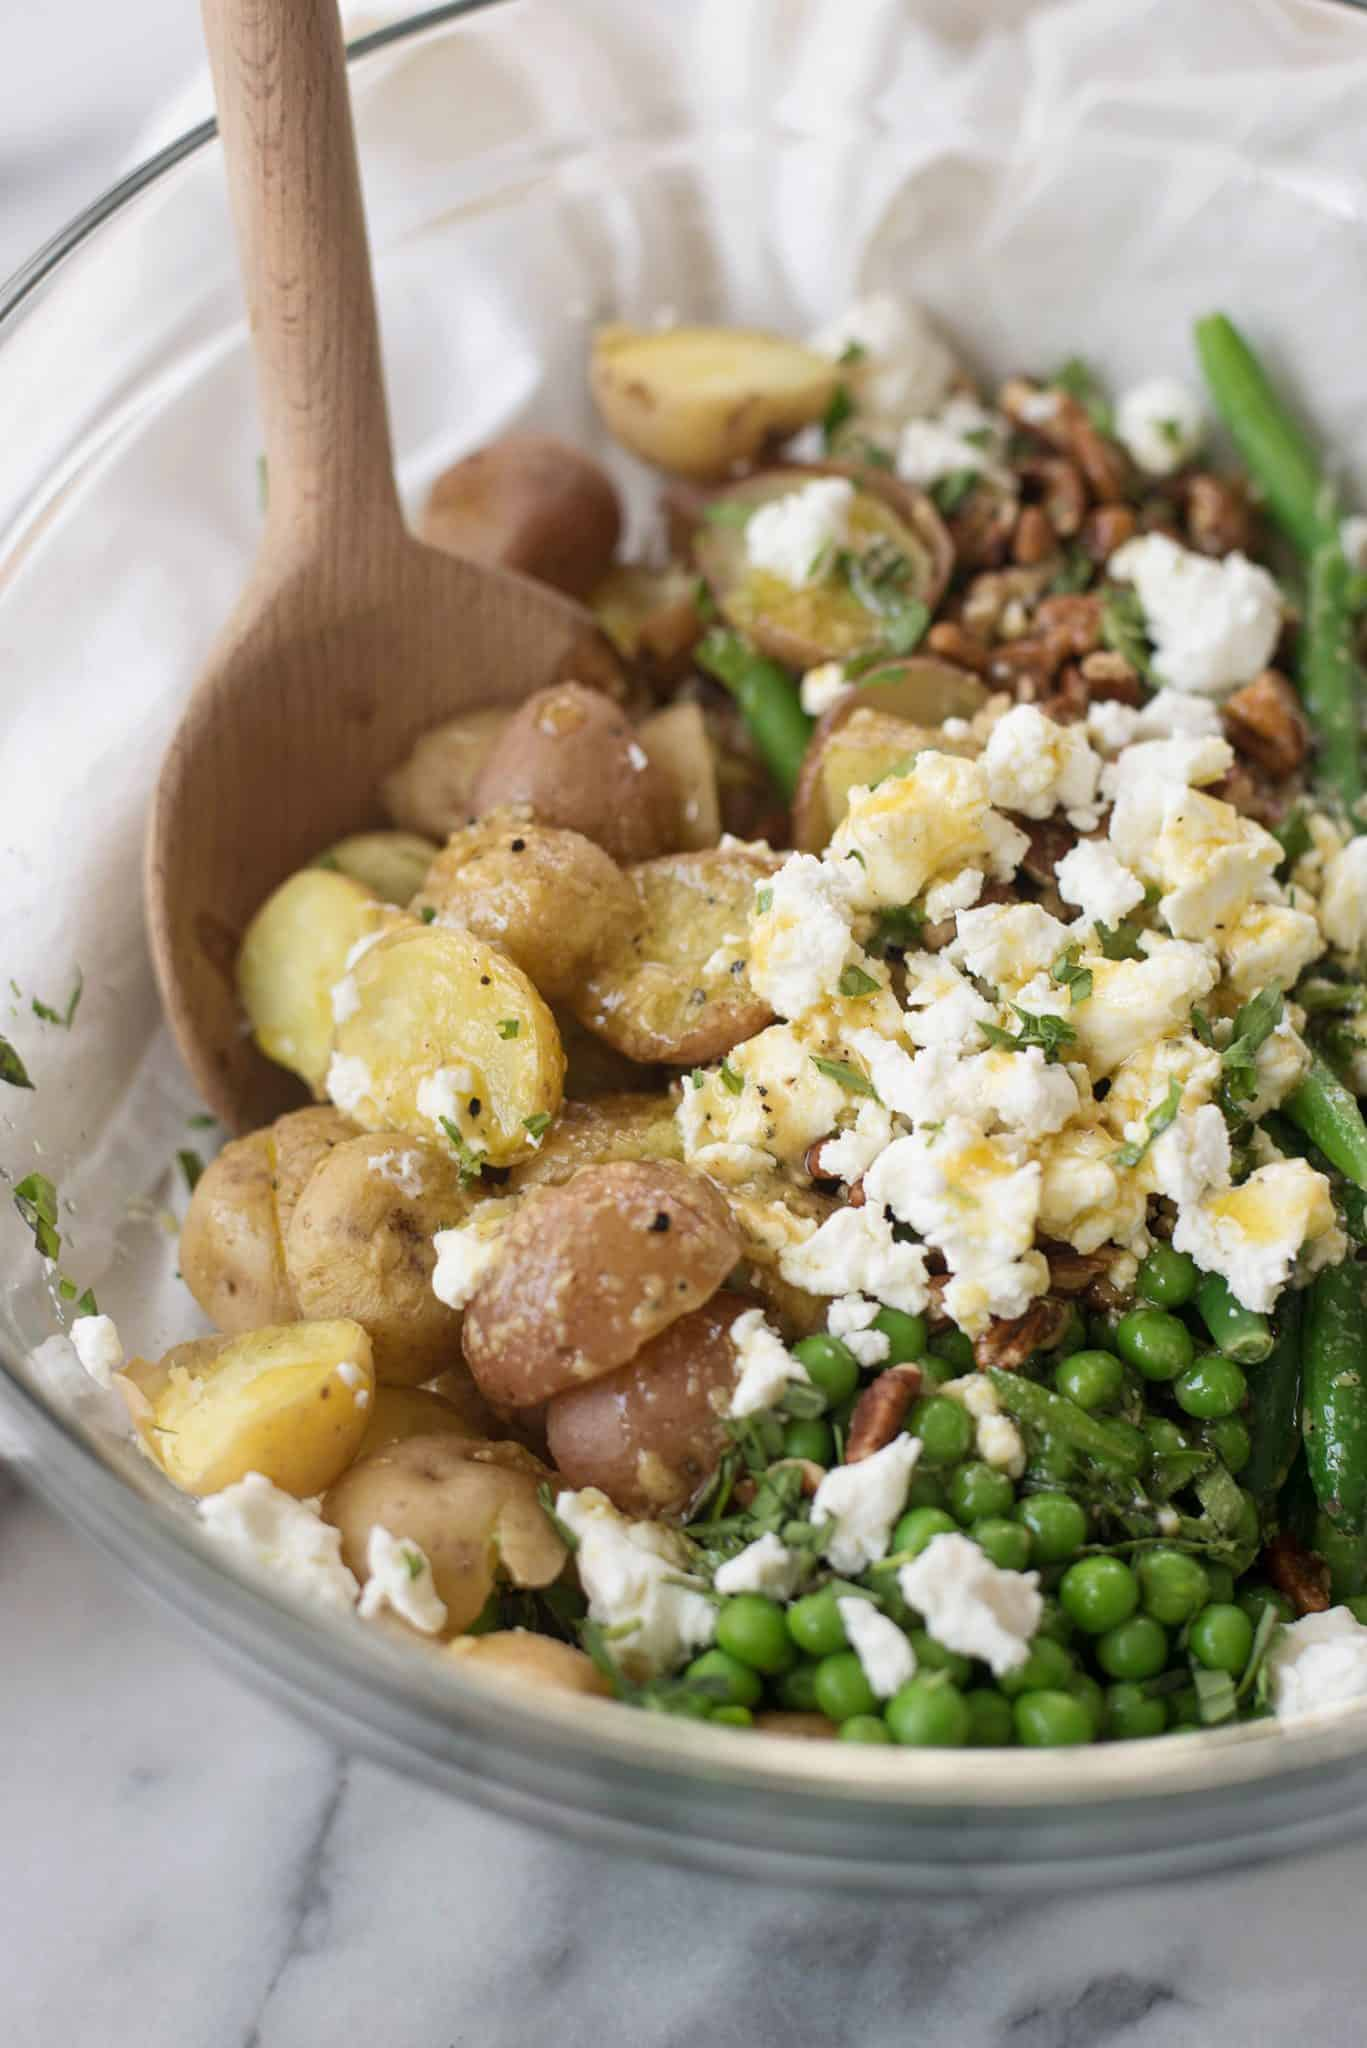 Green Bean, Potato and Tarragon Salad. This vegetarian potato salad is a must make for Spring or Summer. Tossed with peas, goat cheese, pecans and a yummy maple-dijon dressing. Gluten-Free. | delishknowledge.com